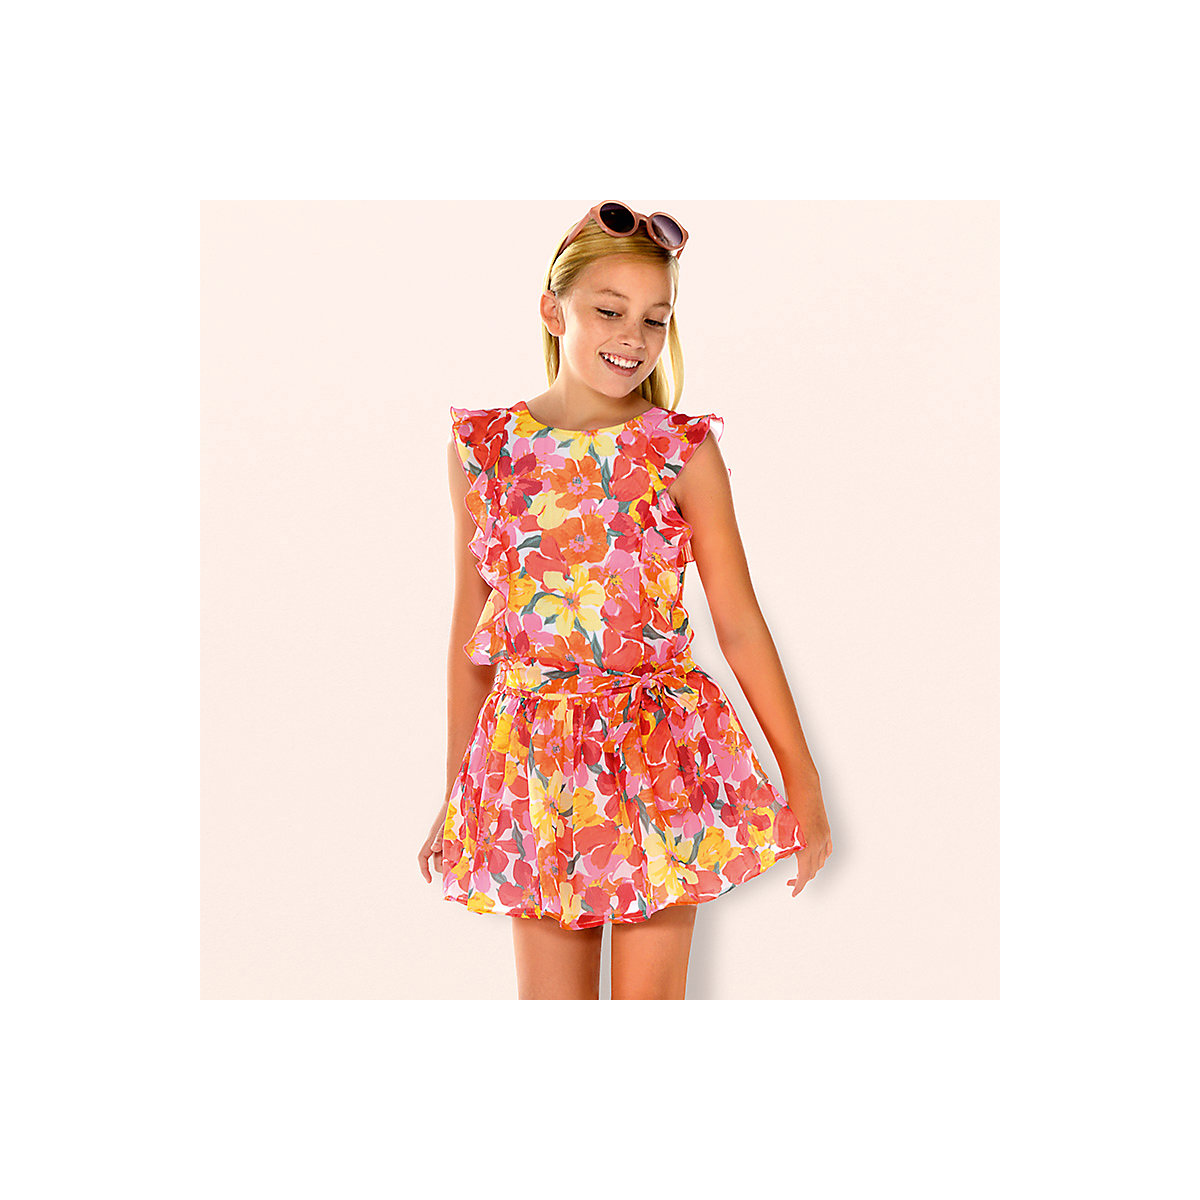 Фото - MAYORAL Dresses 10692726 Girl Children fitted pleated skirt Orange Polyester Casual Floral Knee-Length Sleeveless Sleeve new long communion dresses appliques crew neck sleeveless ball gown back v button flower girl dresses for wedding with bow sash